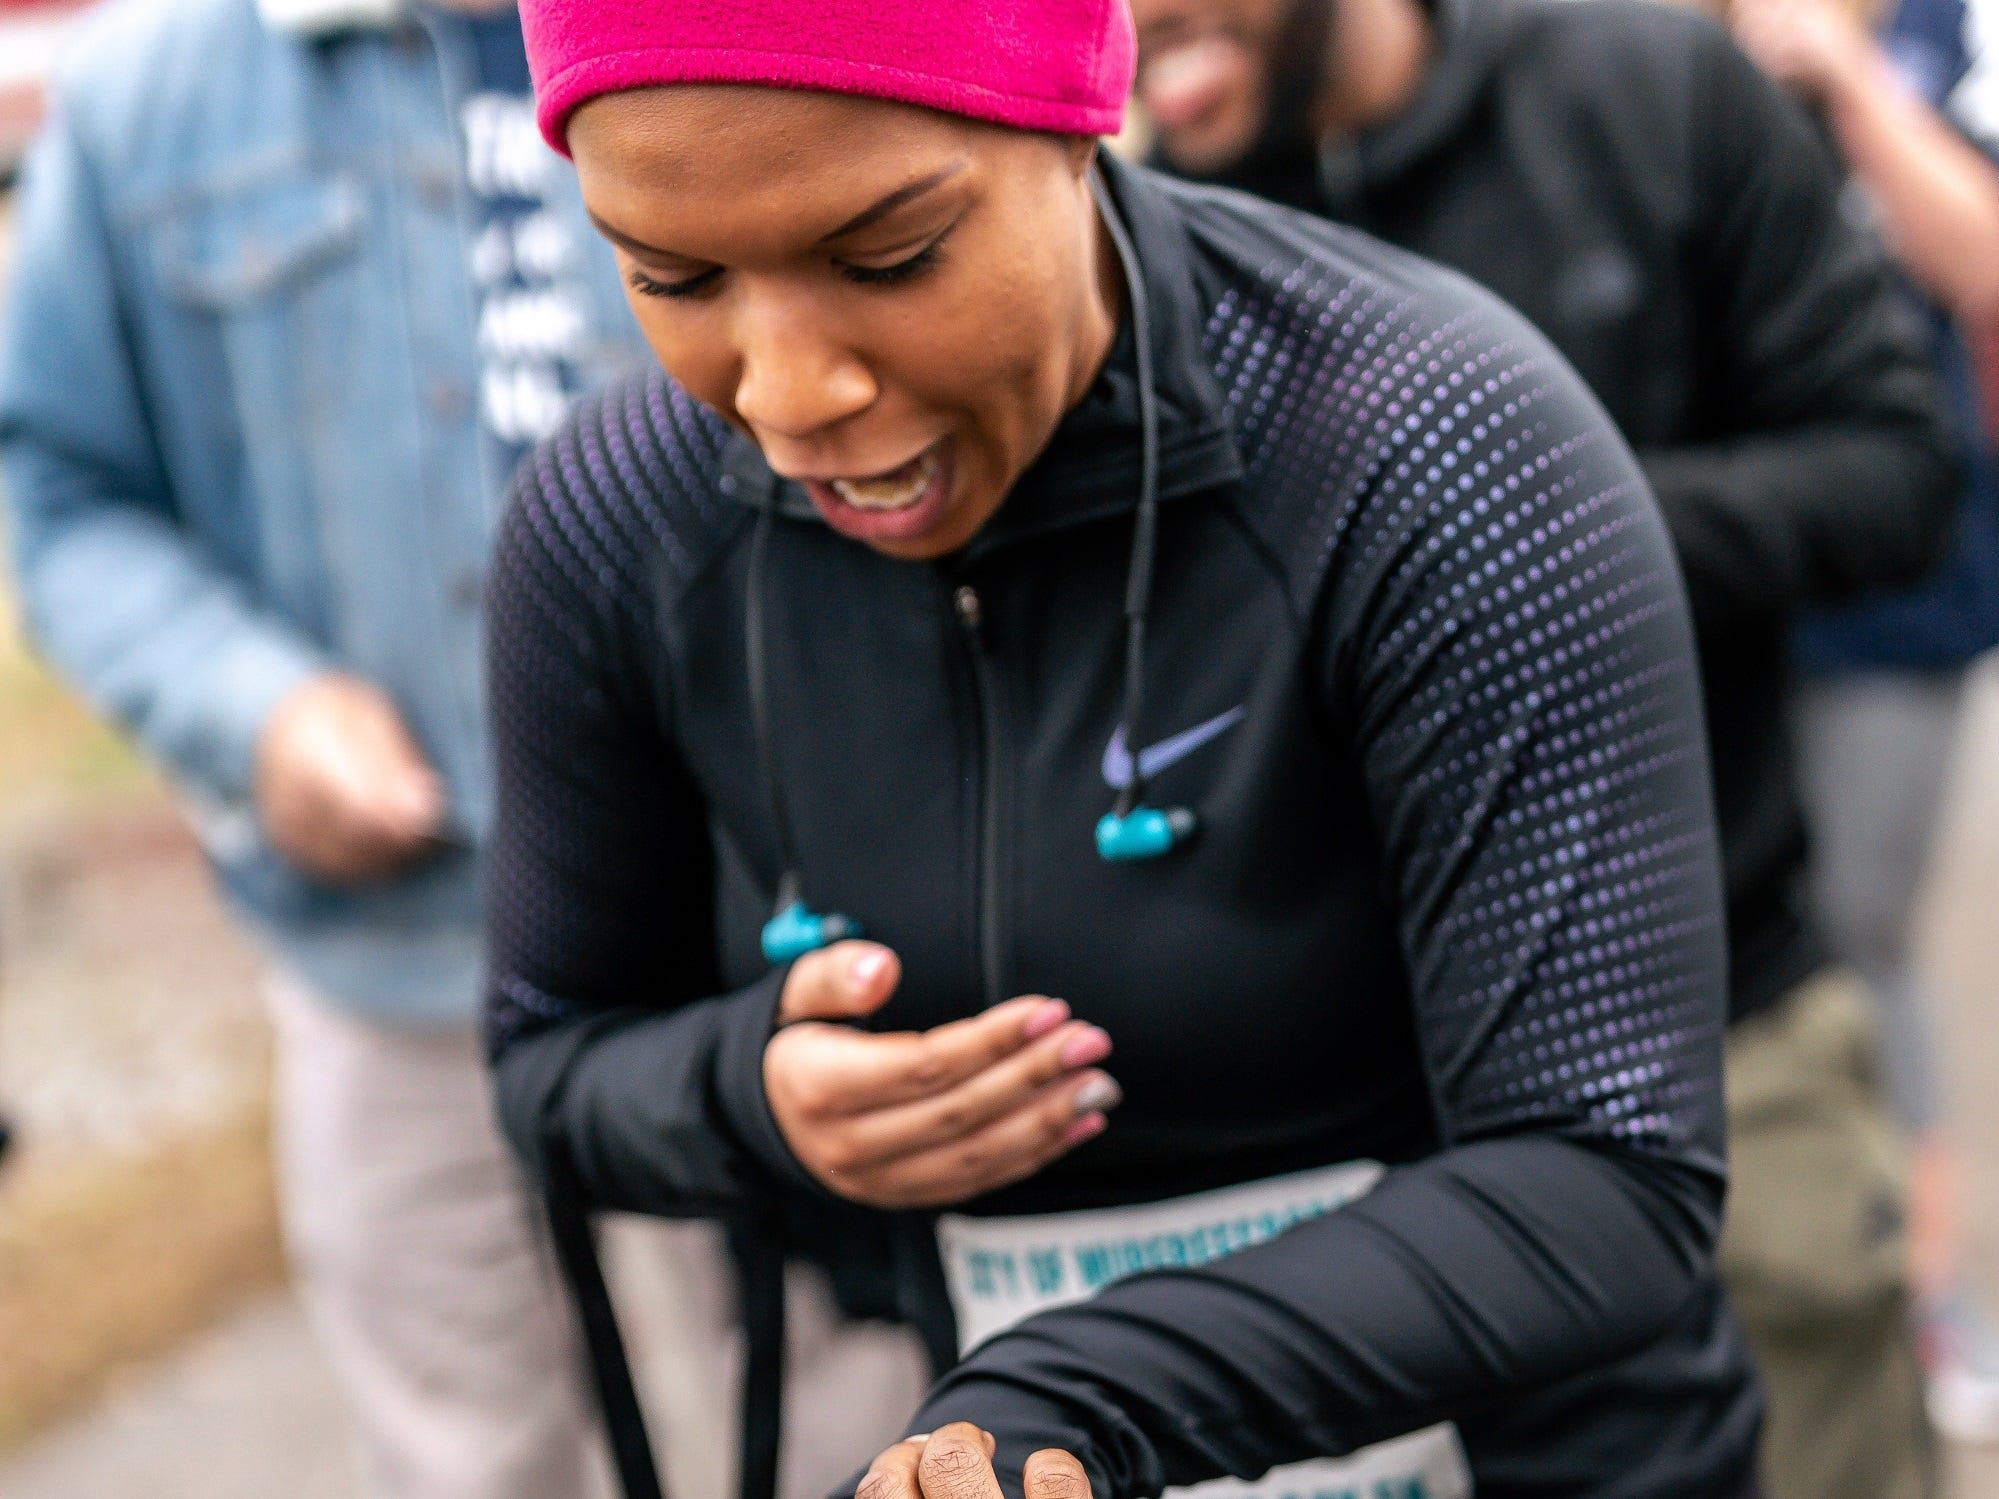 Tiffany Smith shows shock on her face after long-time boyfriend, Joshua Crutchfield, proposes to her after they finished the Murfreesboro New Year's Day 5K.